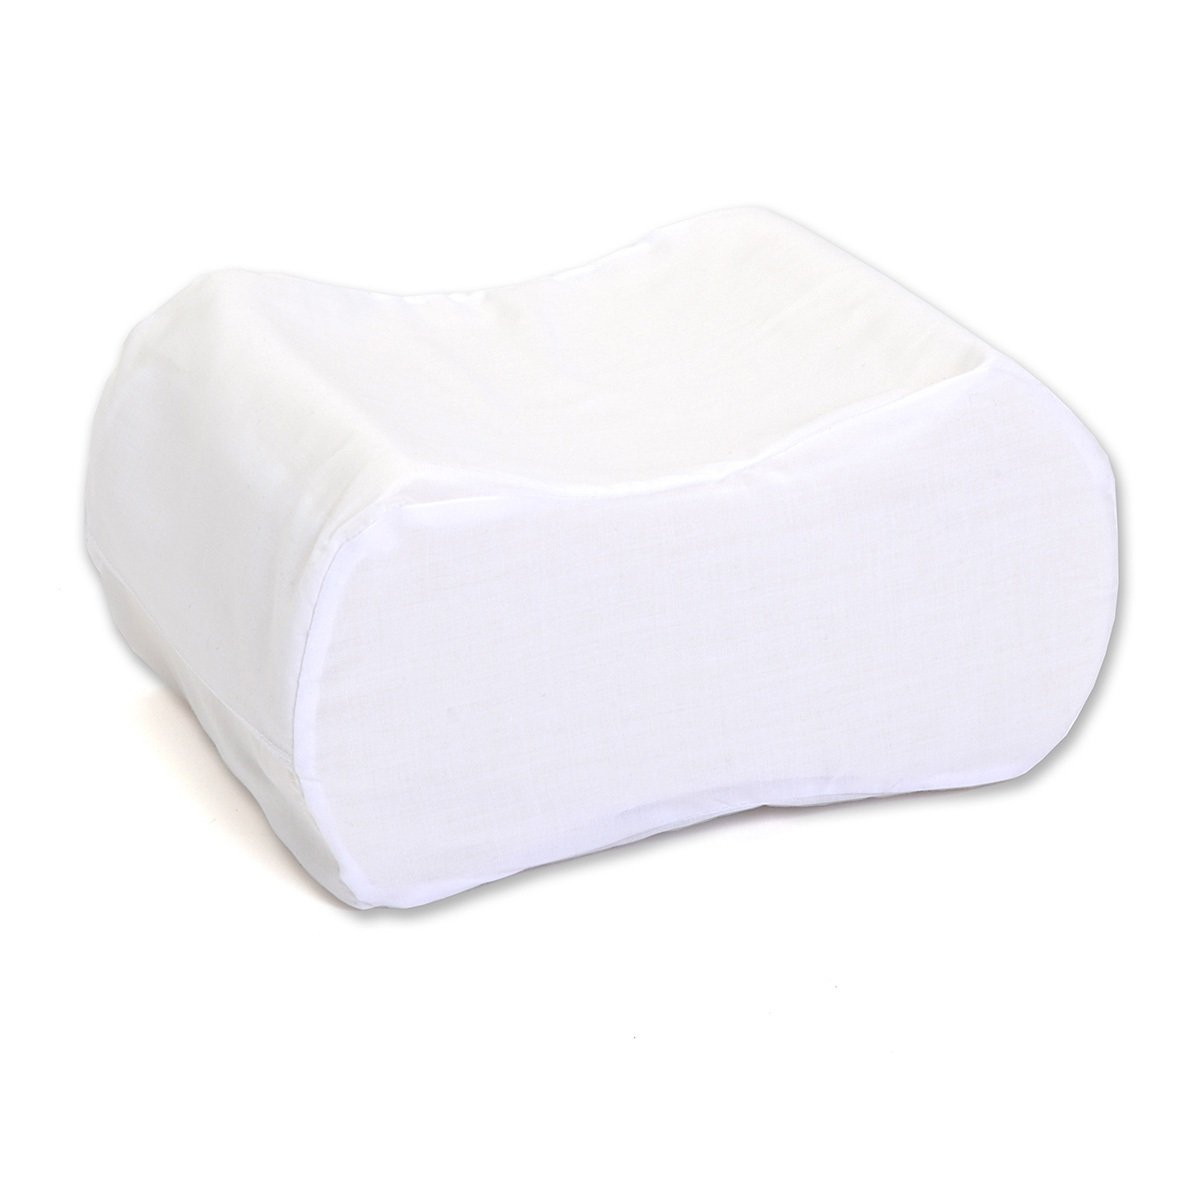 Hermell ProductsMemory Foam Knee Separator Cushion, White Terry by Hermell Products Inc.